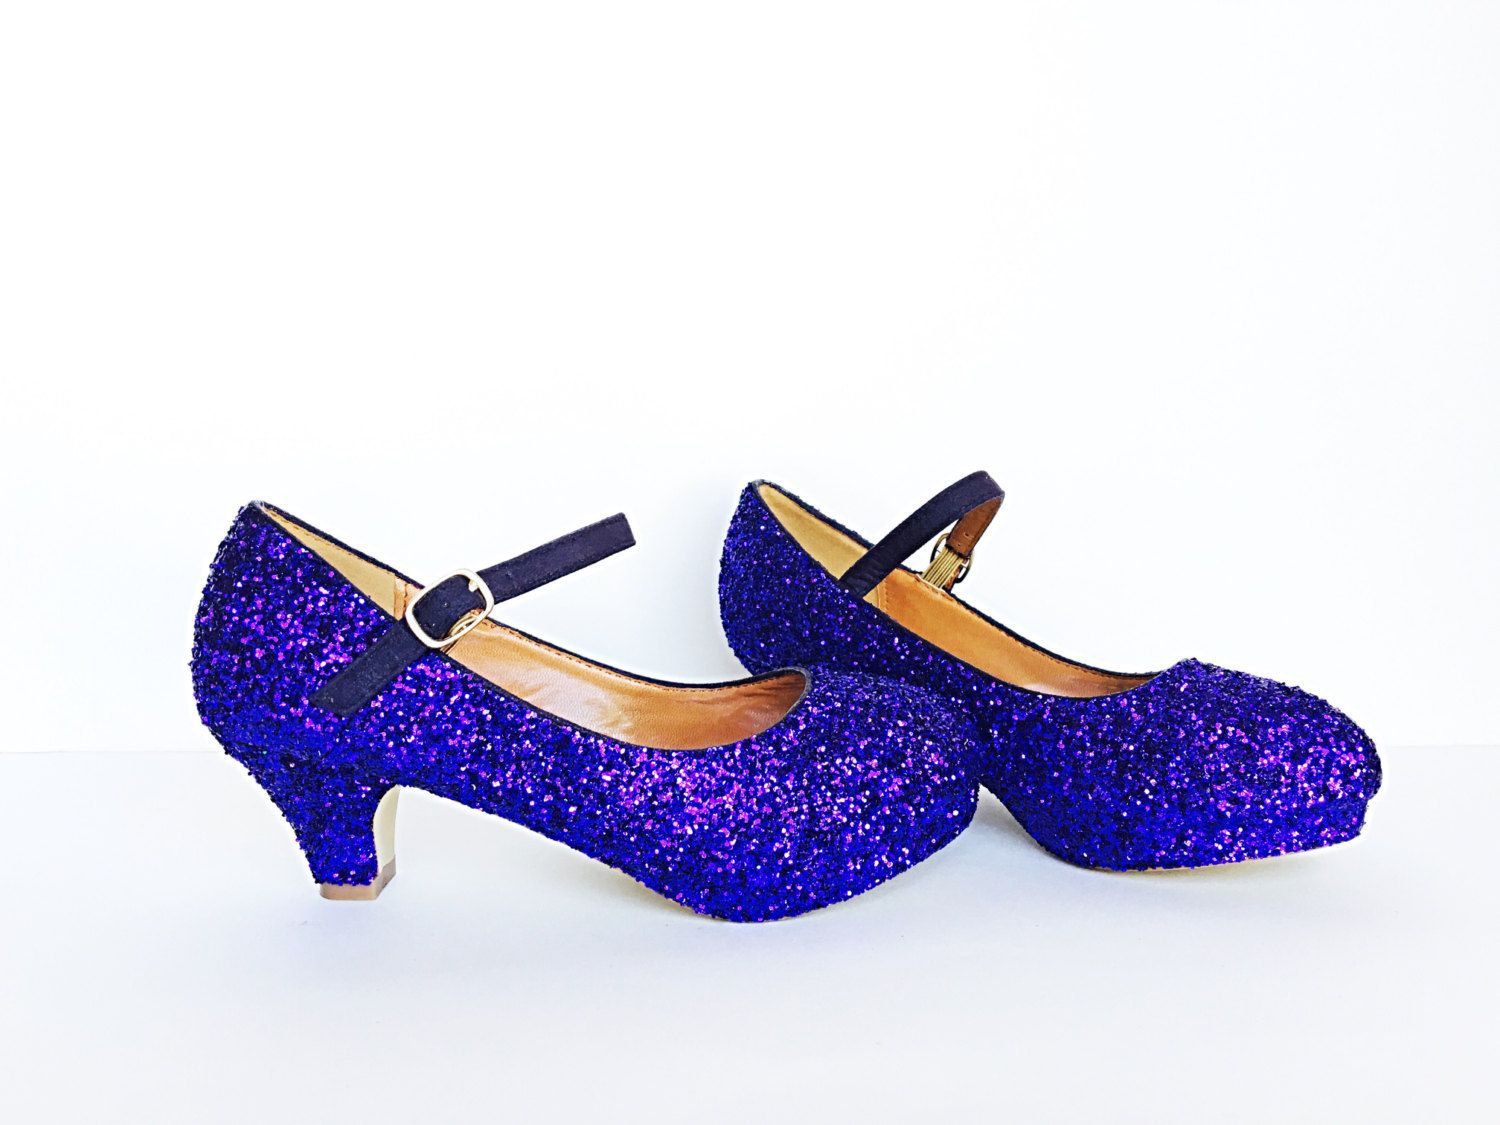 Hunter Kids First Classic Glitter Star Cloud (Toddler/Little Kid) (Acid Purple) Girls Shoes Please note: Hunter Kids lists the UK size on all footwear. For example if you order a US 10 Toddler the size printed on footwear and packaging will be a size 9.